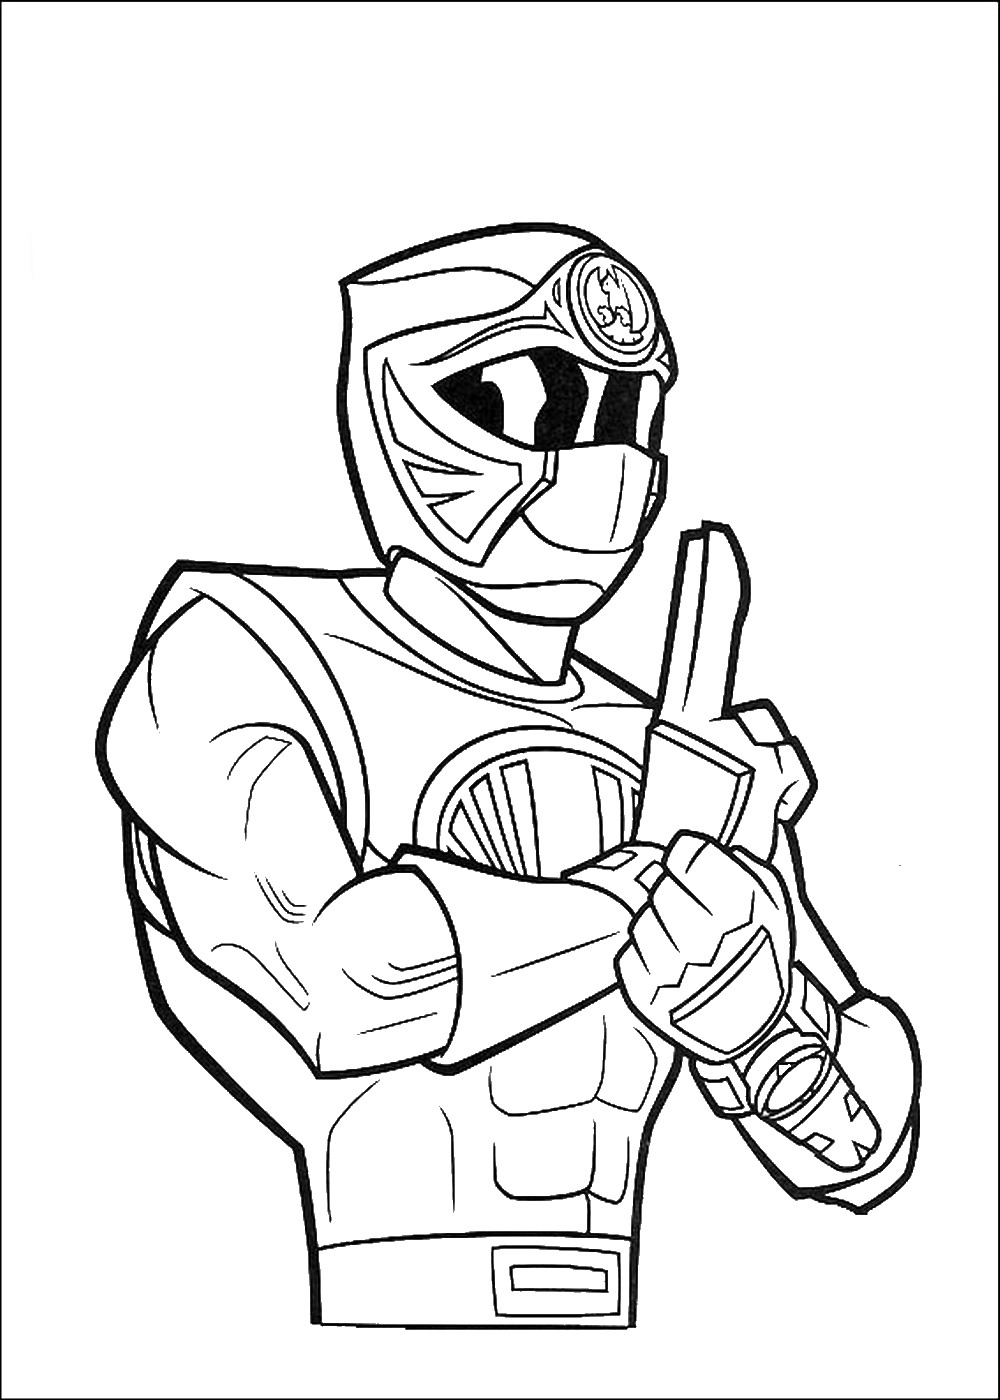 power rangers color pages power rangers coloring pages free large images rangers color power pages